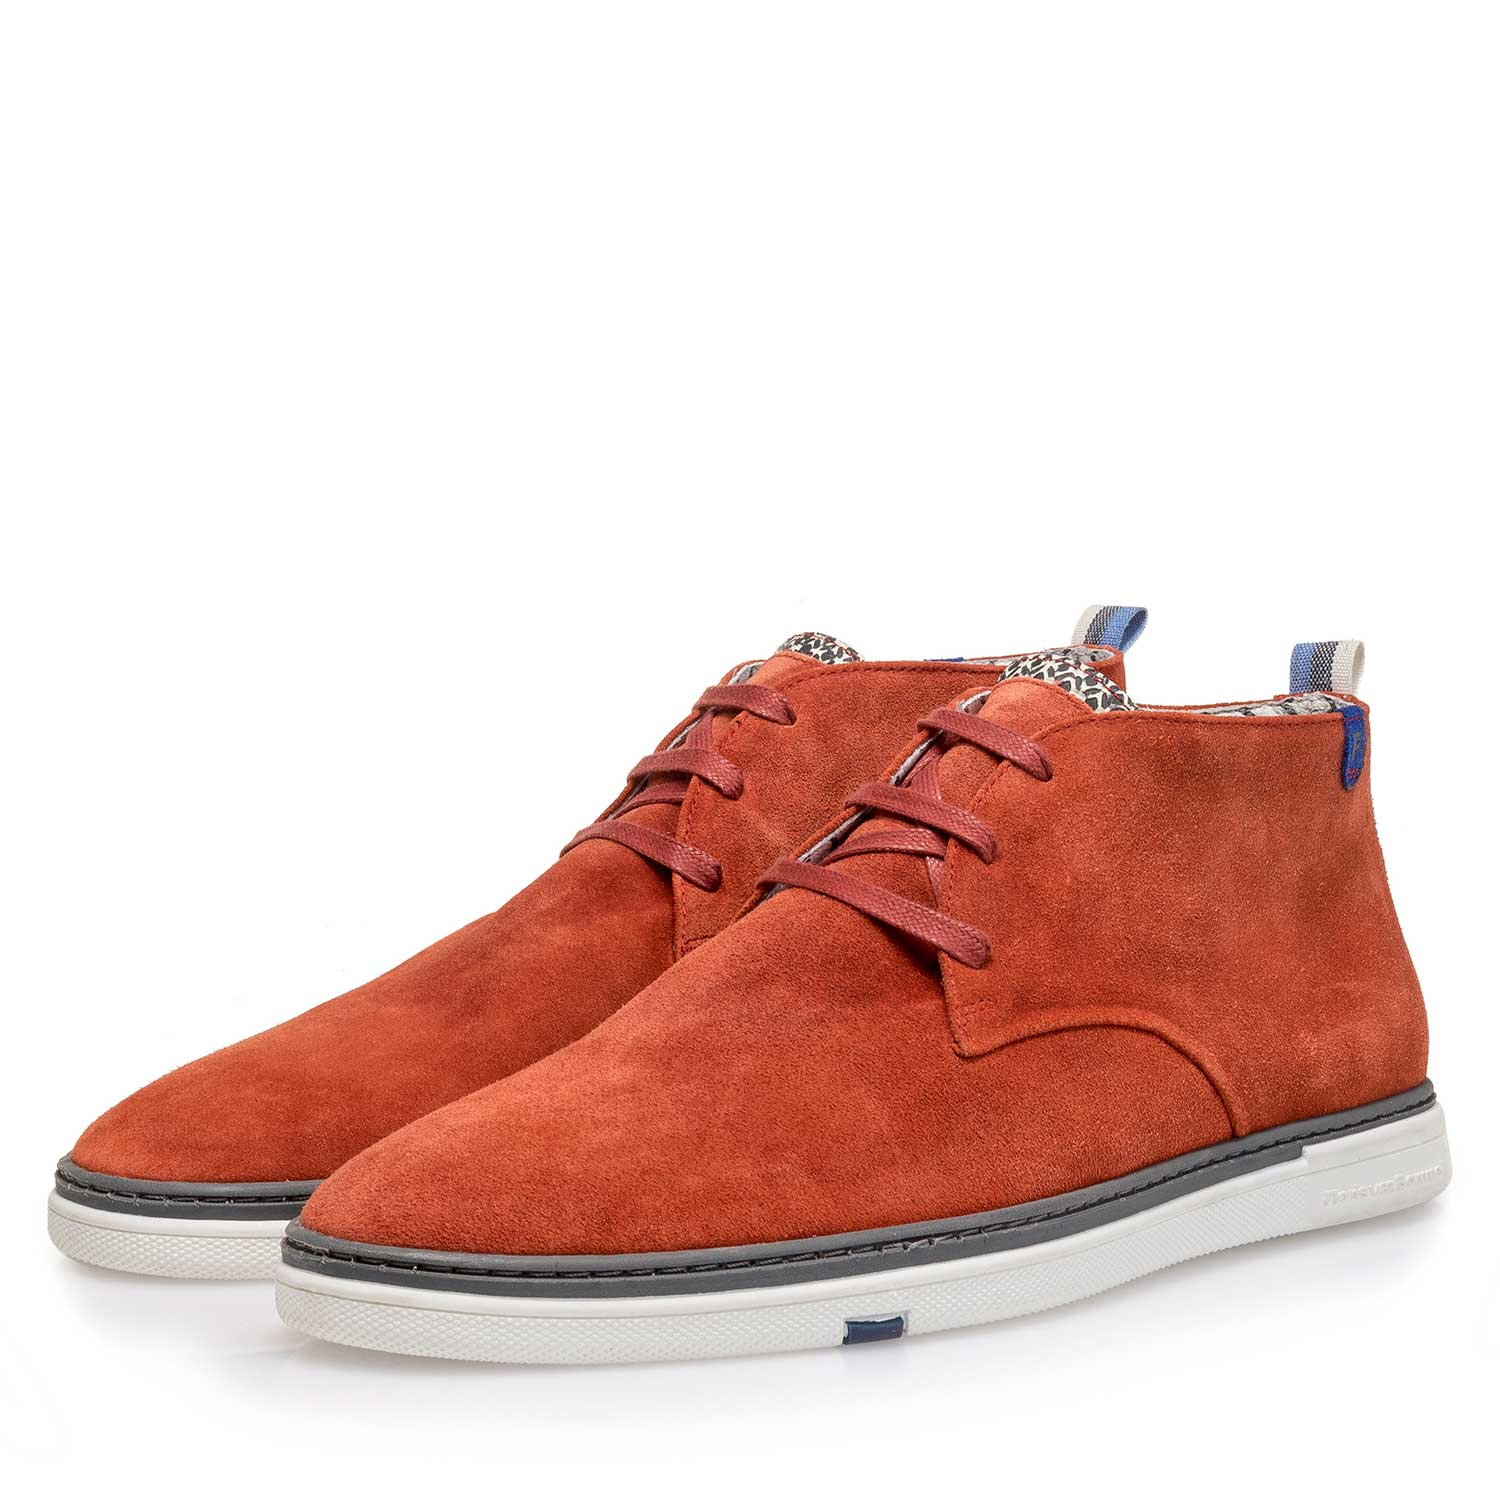 10502/04 - Orange-coloured slightly buffed suede leather boot